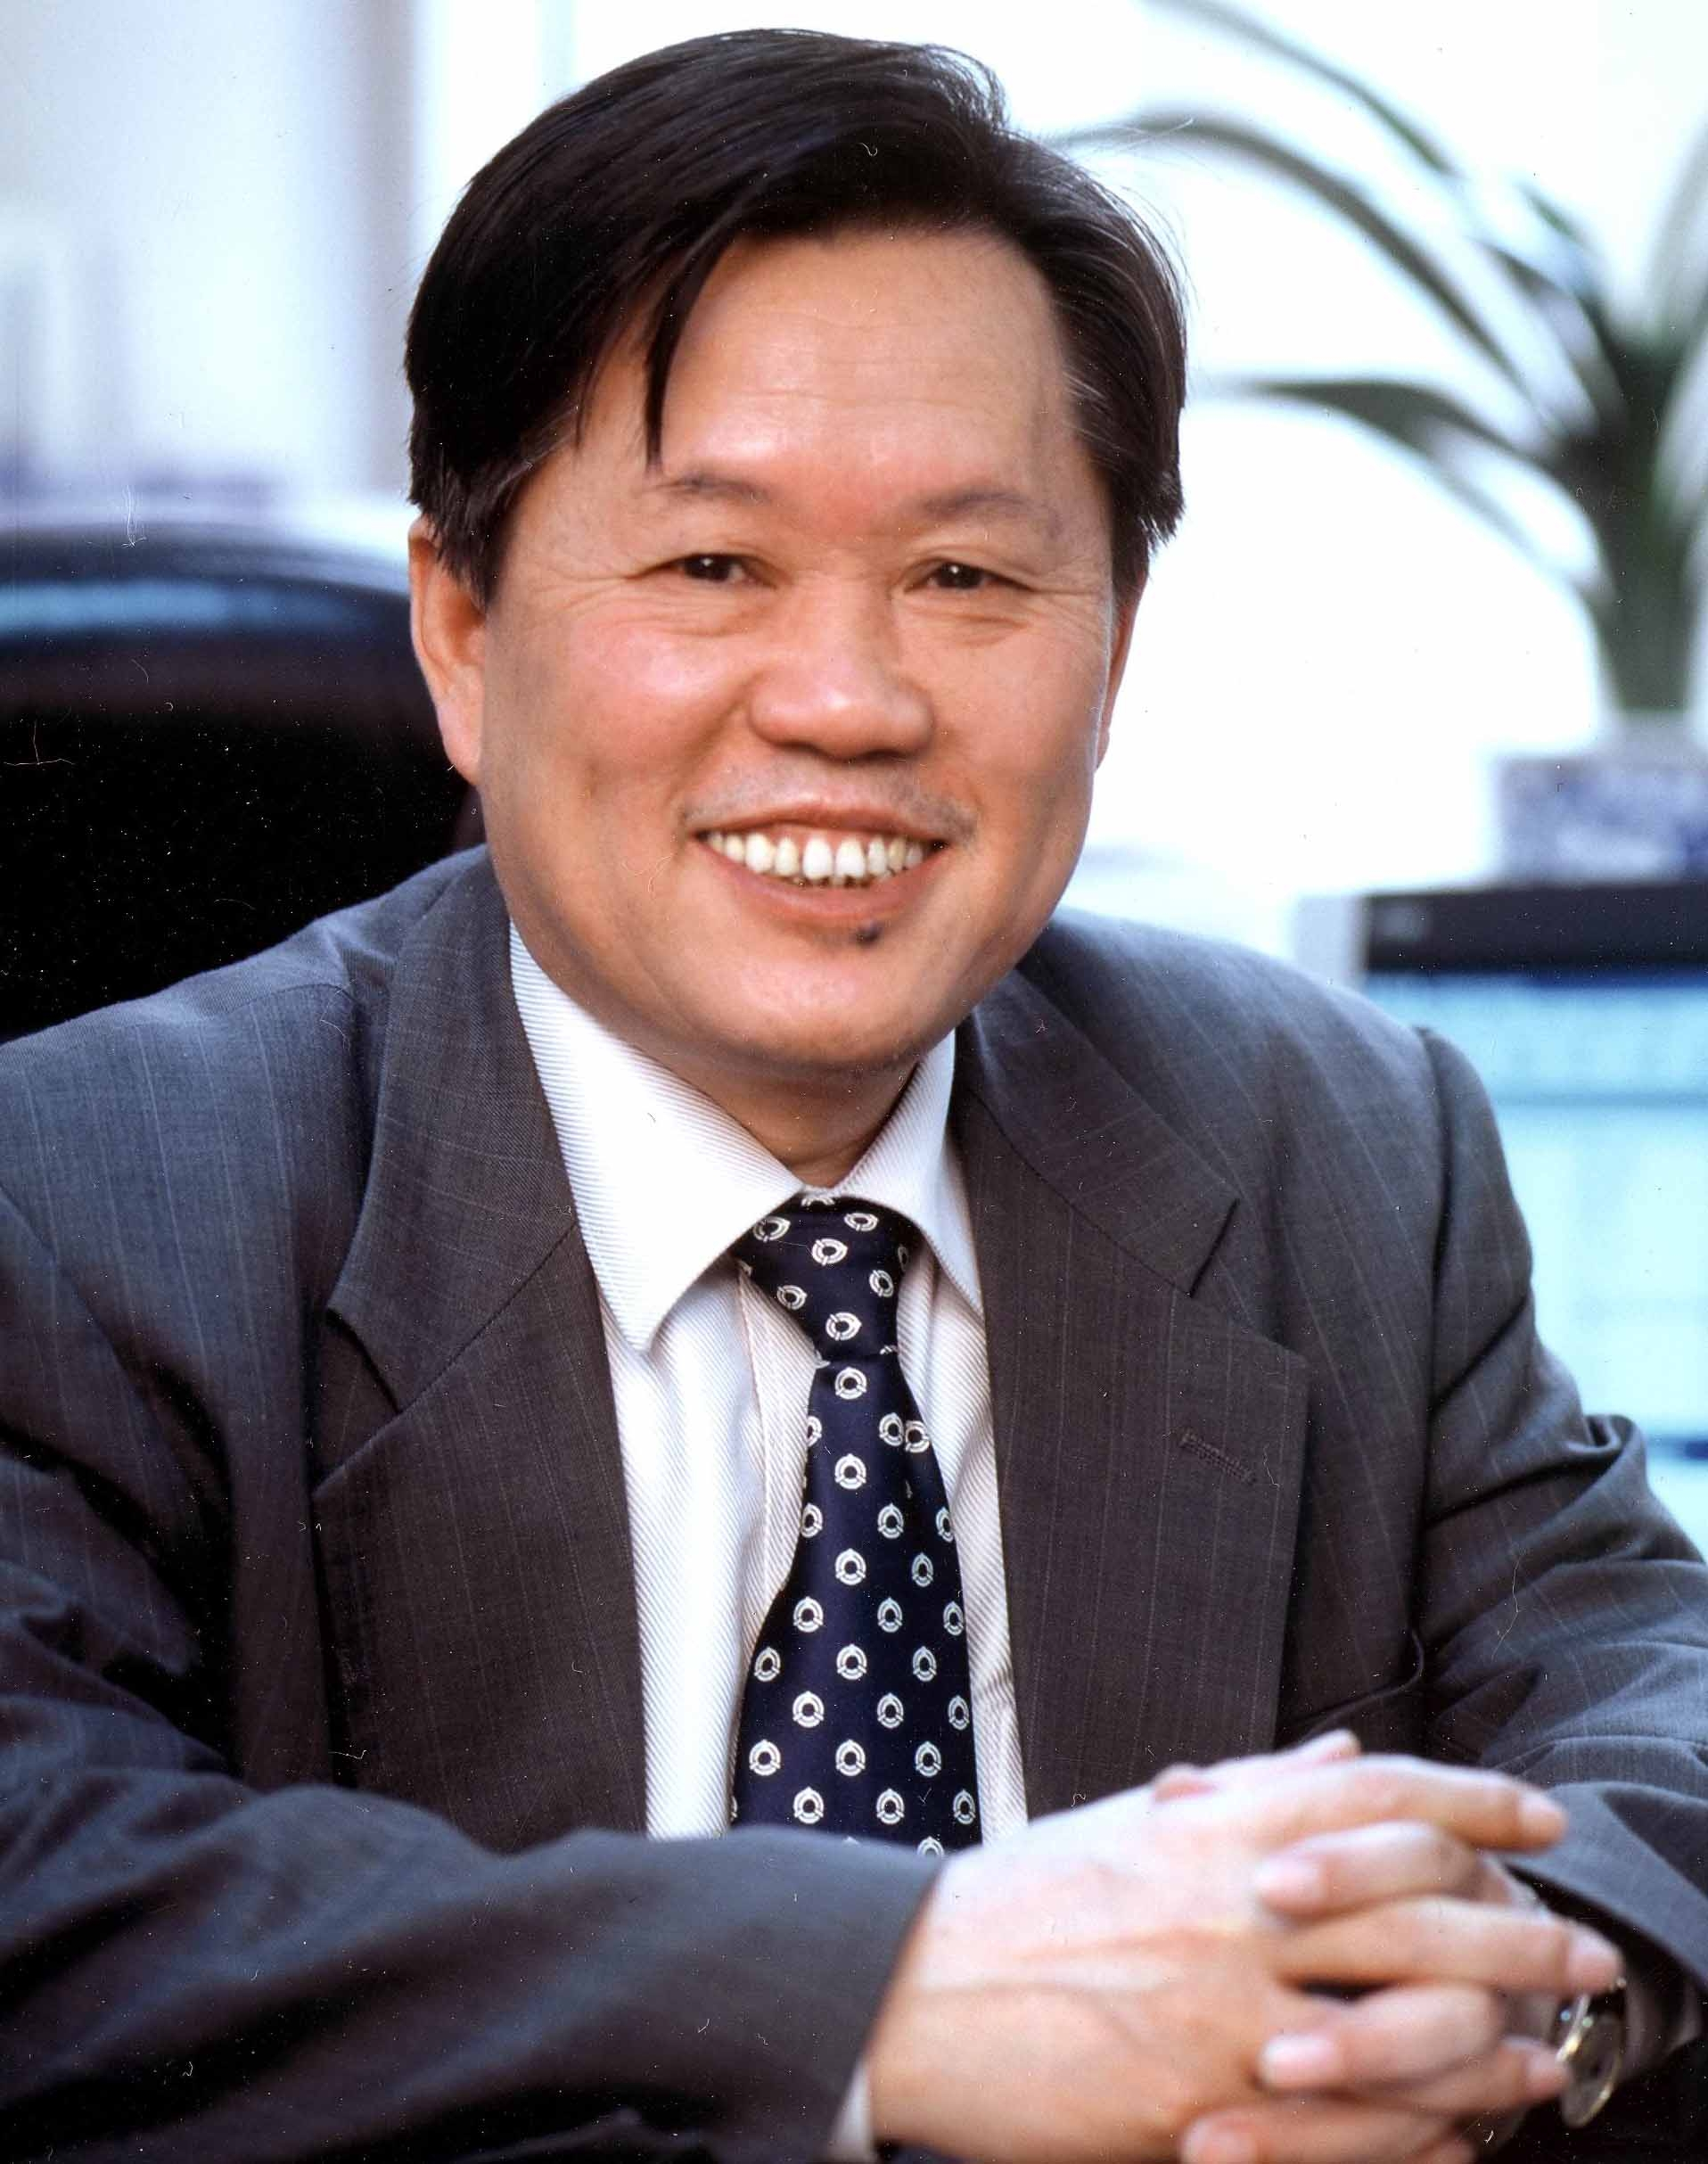 Prof. Li Guojie of the Division of Information and Electronic Engineering